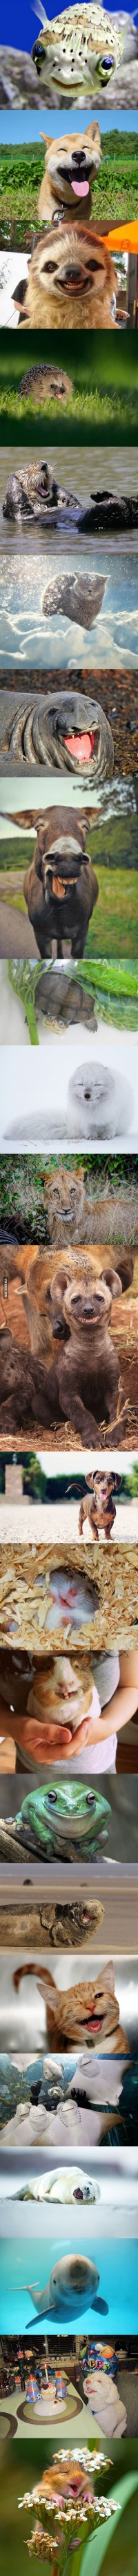 The happiest animals in the world. - 9GAG